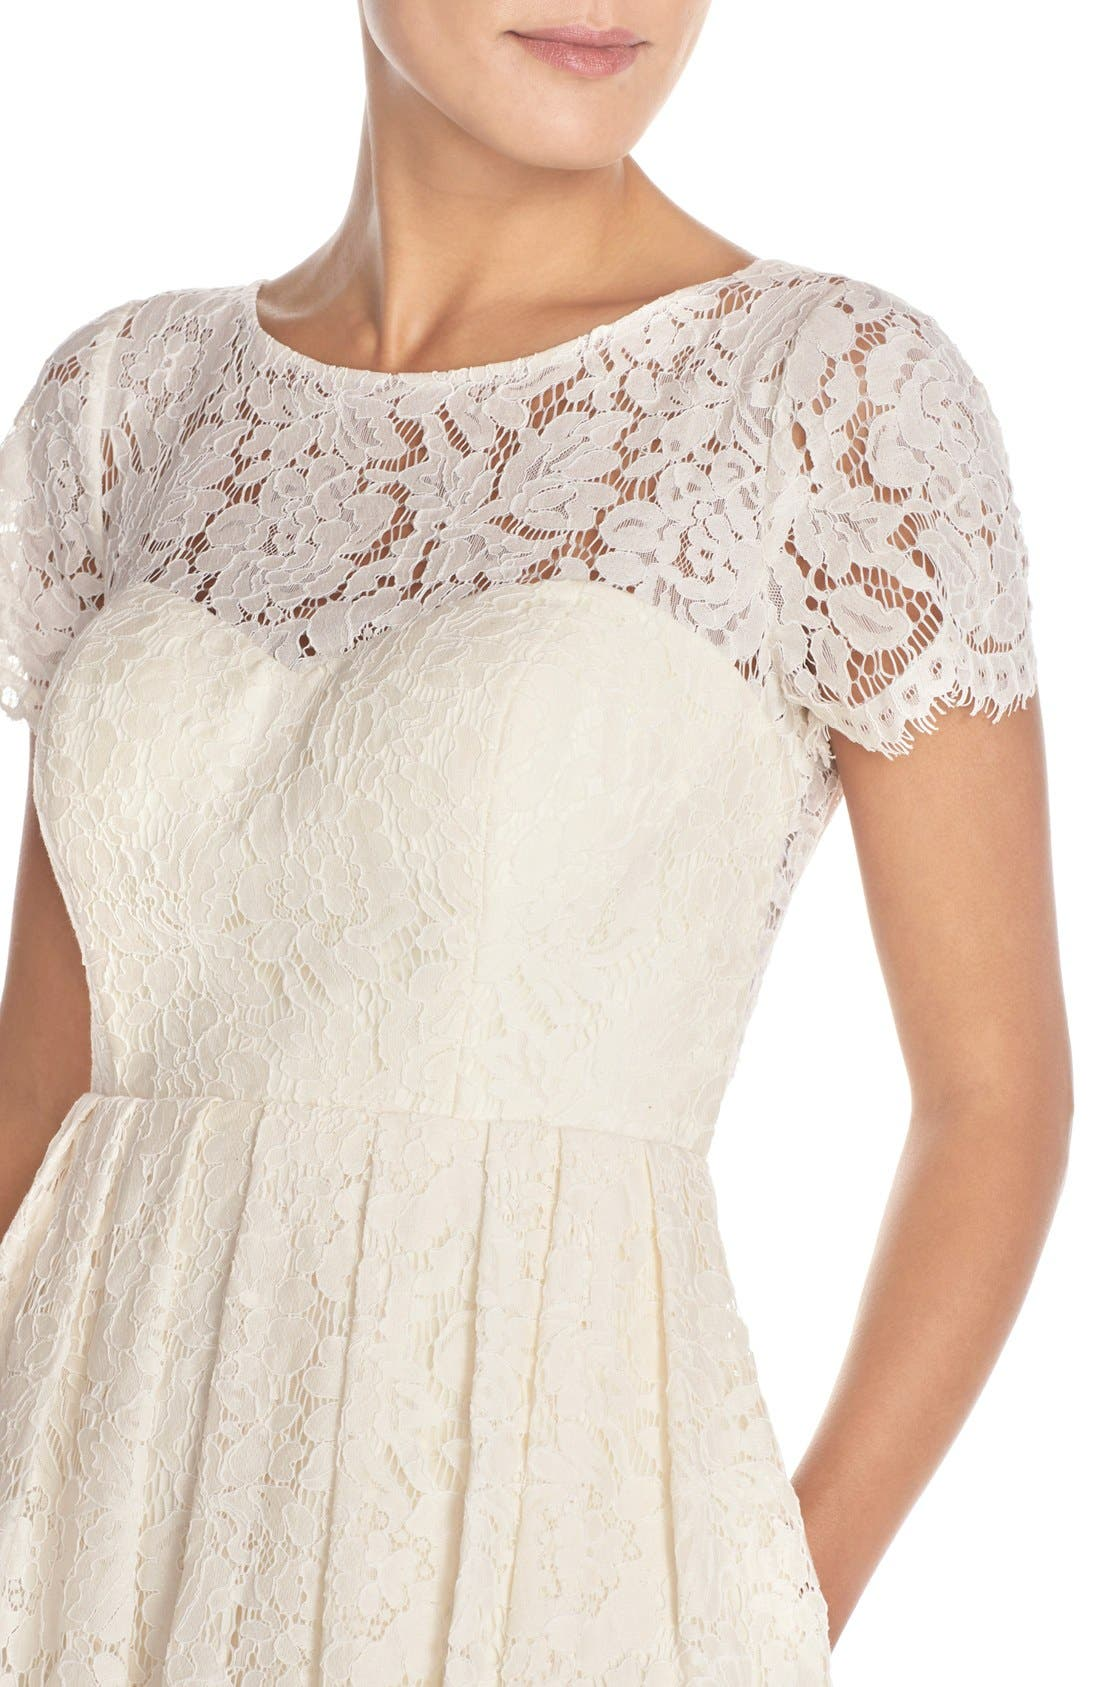 Cadence Keyhole Back Lace Fit & Flare Dress,                             Alternate thumbnail 4, color,                             905